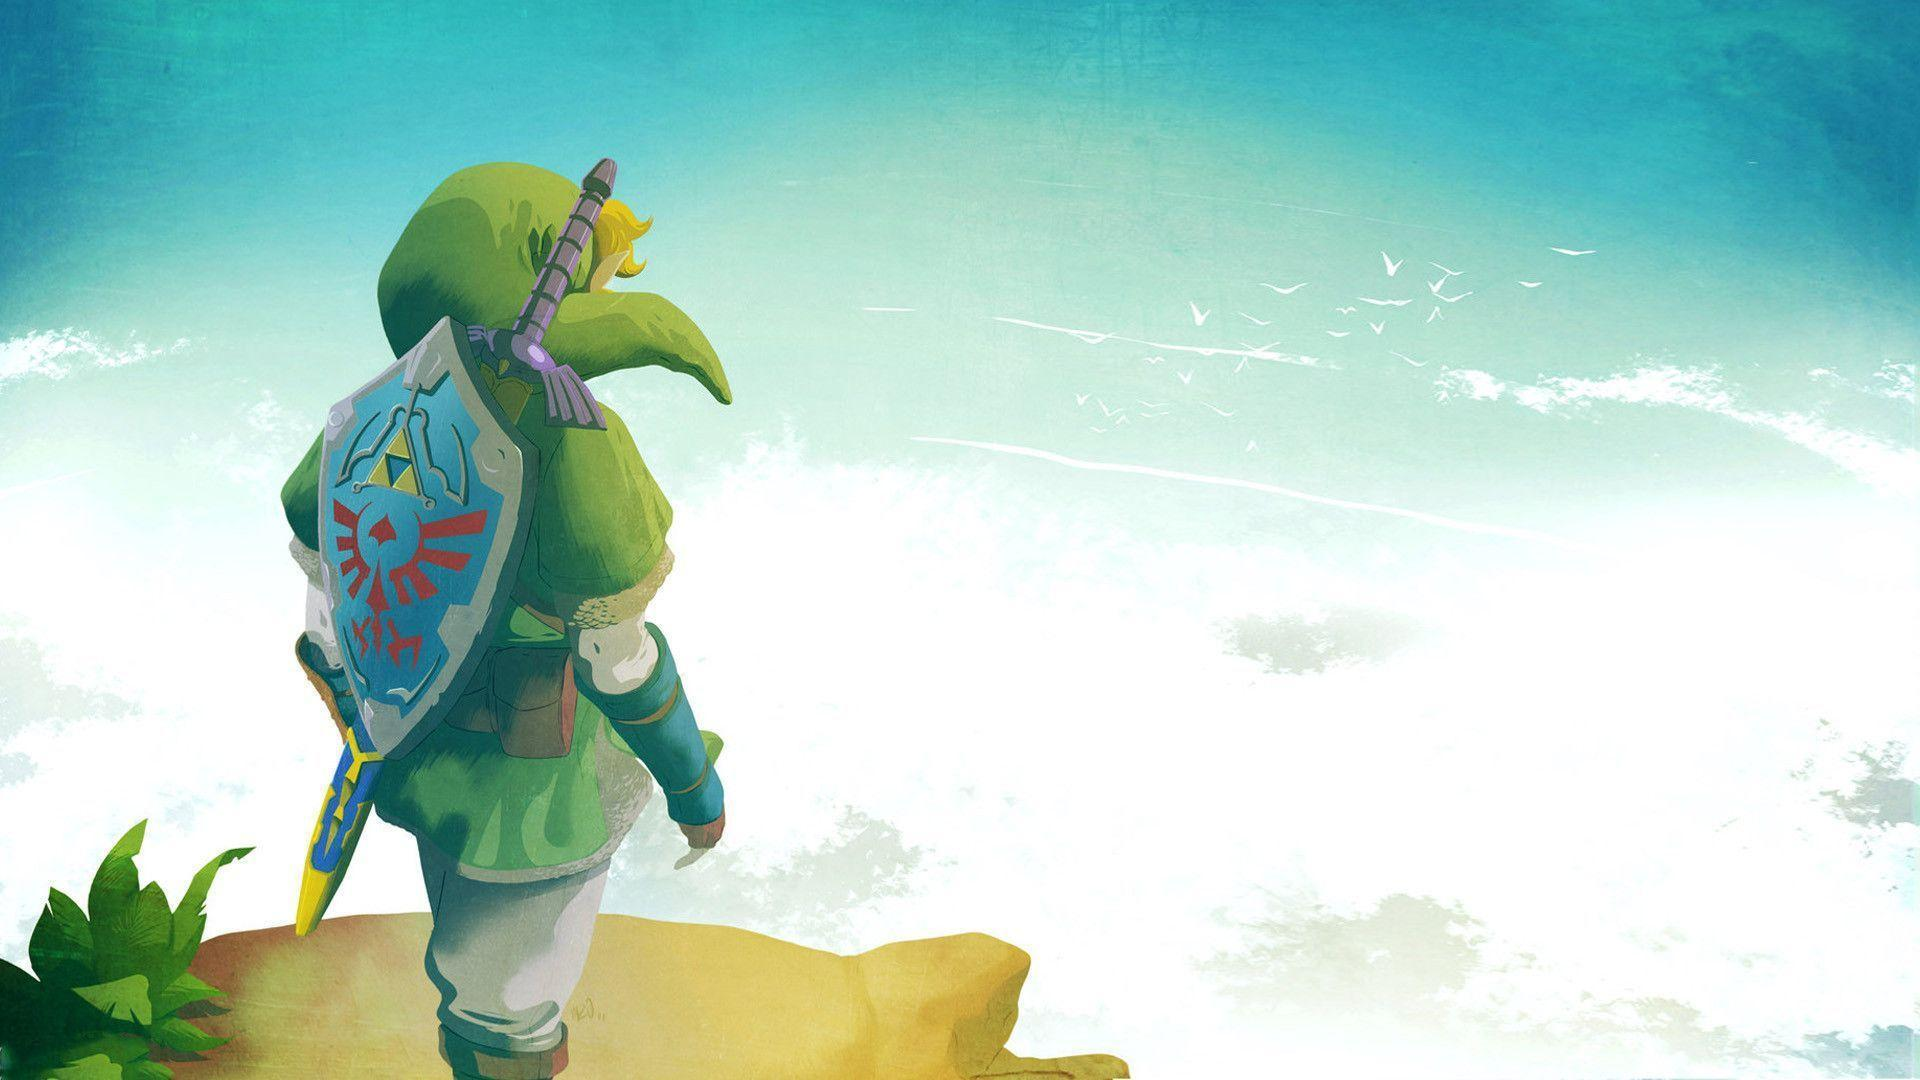 hd zelda wallpapers - photo #39